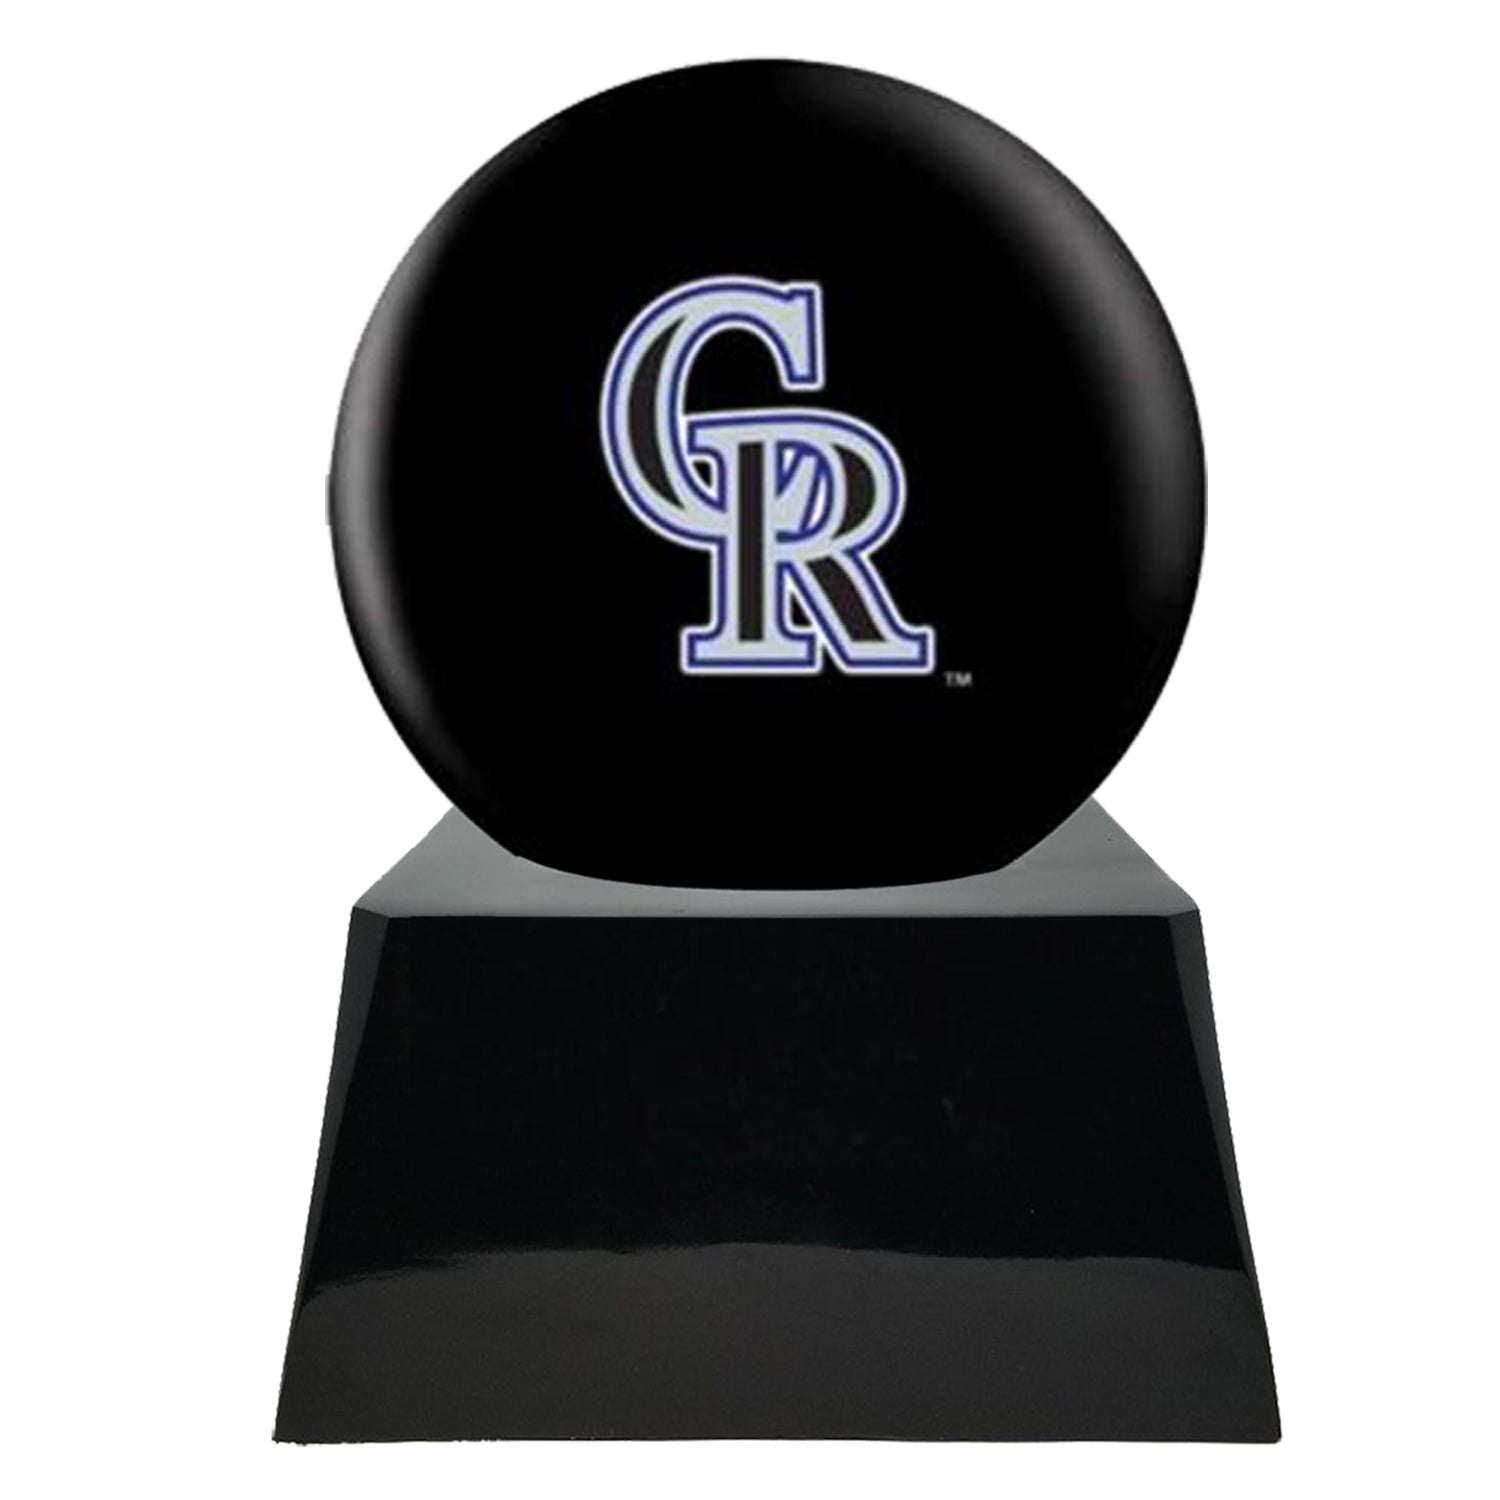 Baseball Team Urn - Colorado Rockies Ball Decor with Custom Metal Plaque Baseball Cremation Urn for Human Ashes - MLB URN - Memorials4u